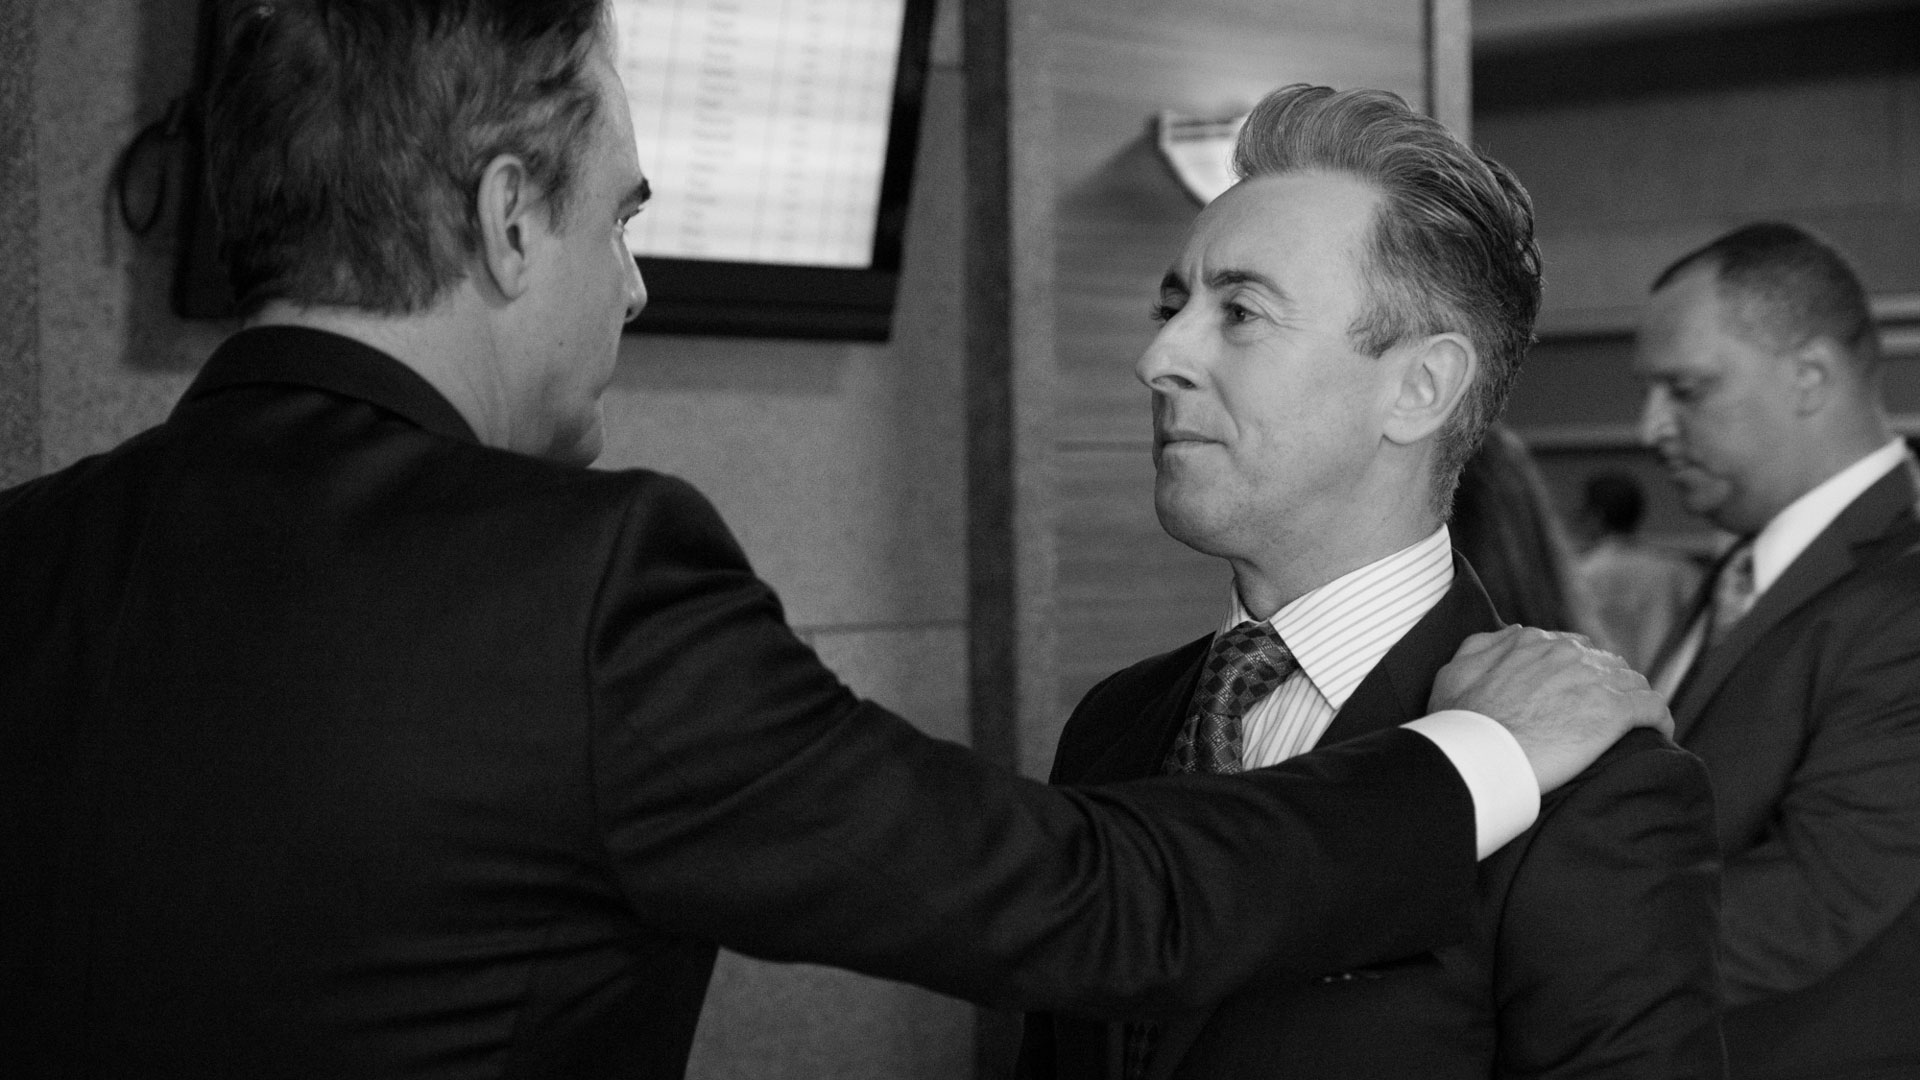 Chris Noth and Alan Cumming share a moment.